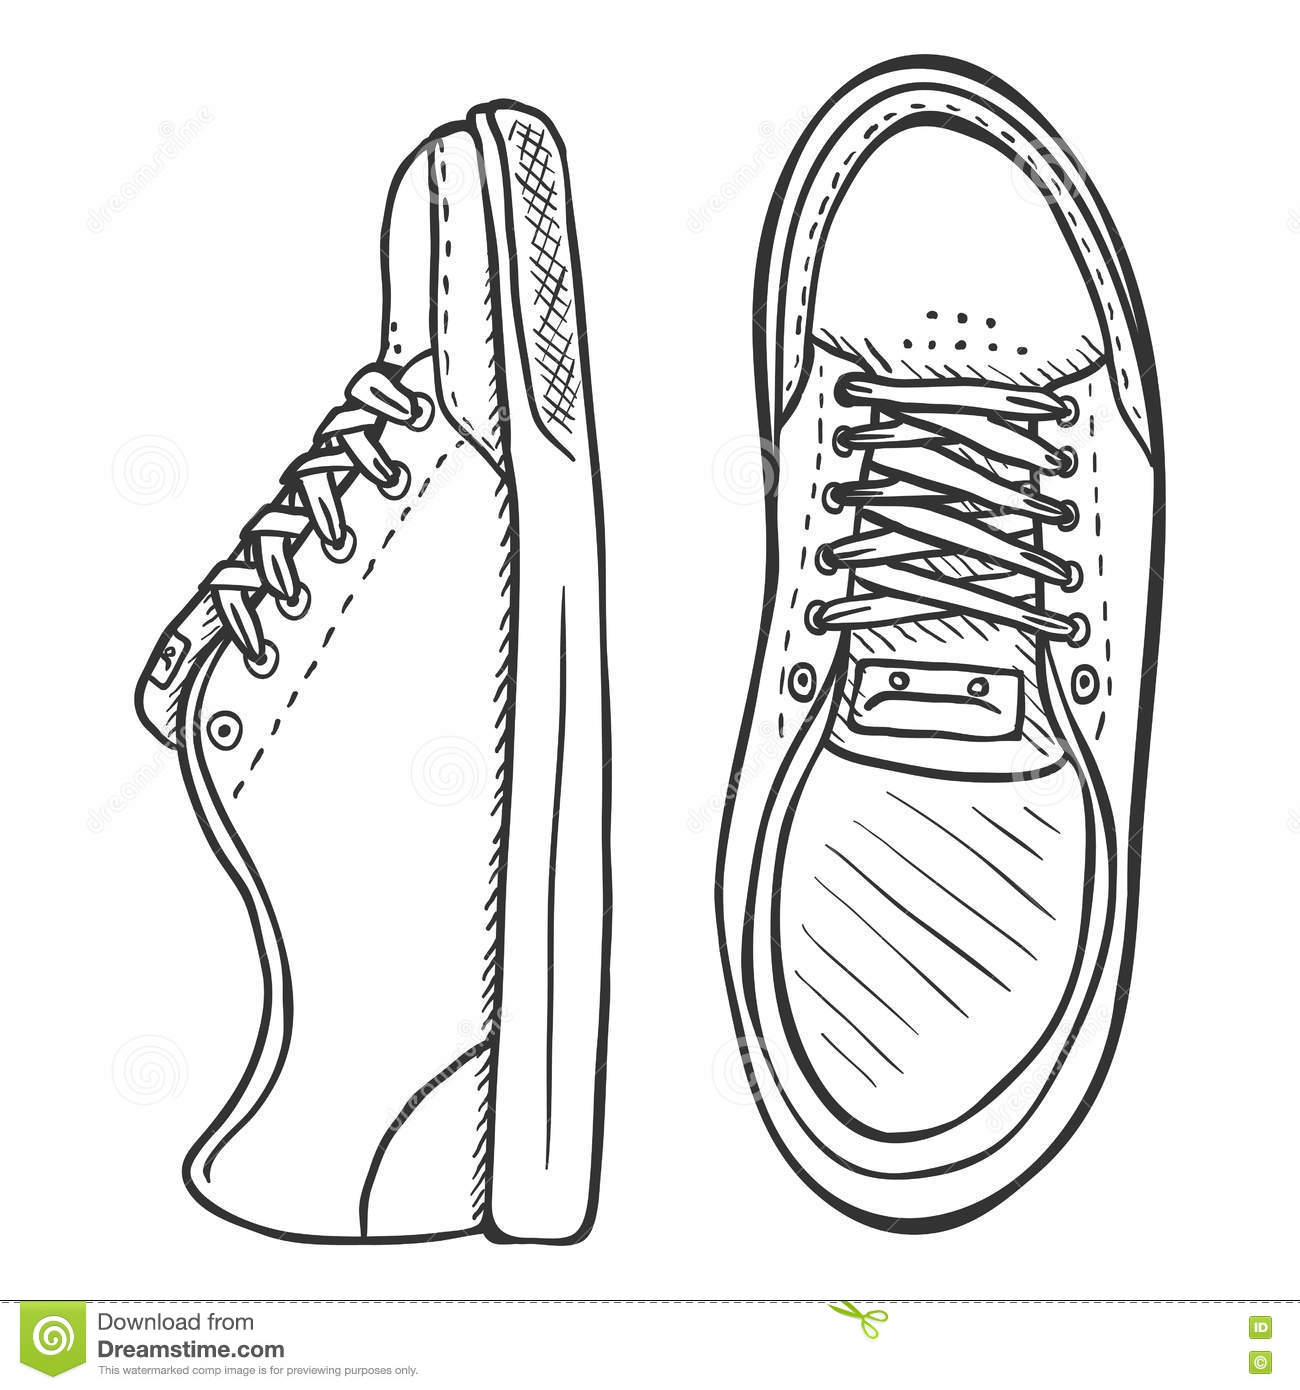 Shoe drawing template image for the resource doc marten template shoe drawing template download maxwellsz